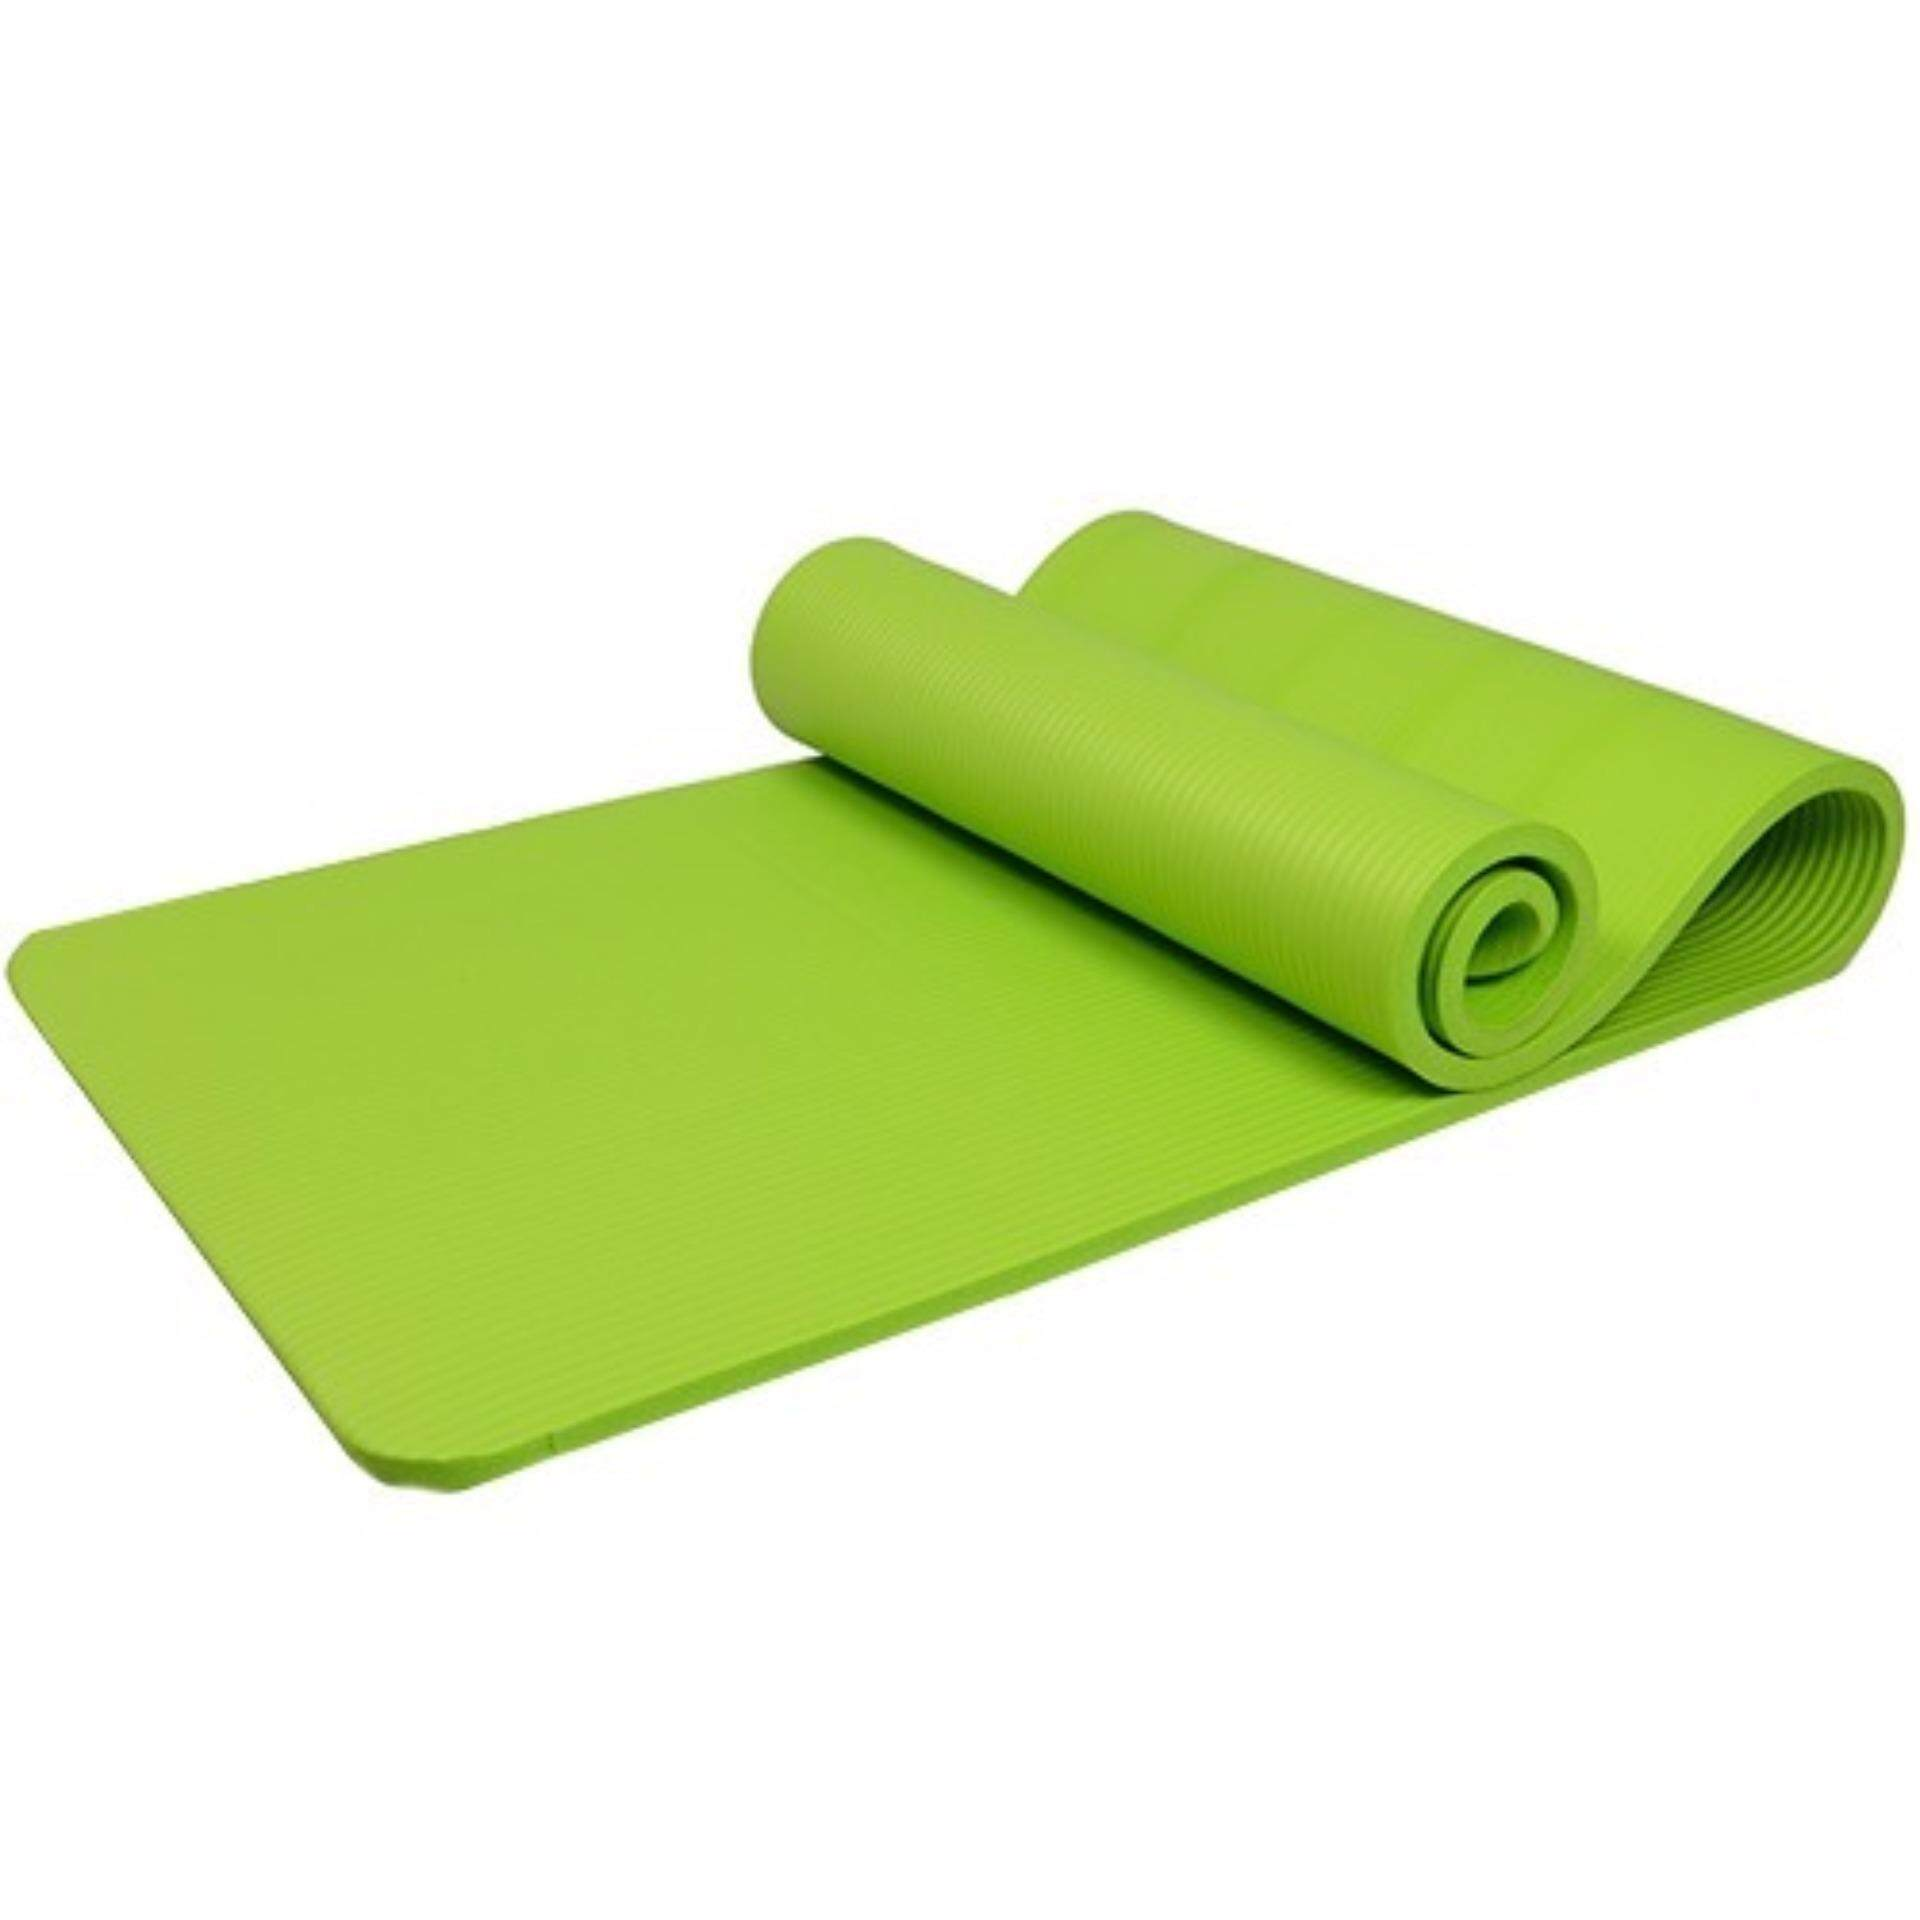 Yoga Mat 10mm/ 80x183cm Extra Wide/Anti-slip/impact Cushioned/free Strap-GREEN/BLUE/PINK/PURPLE